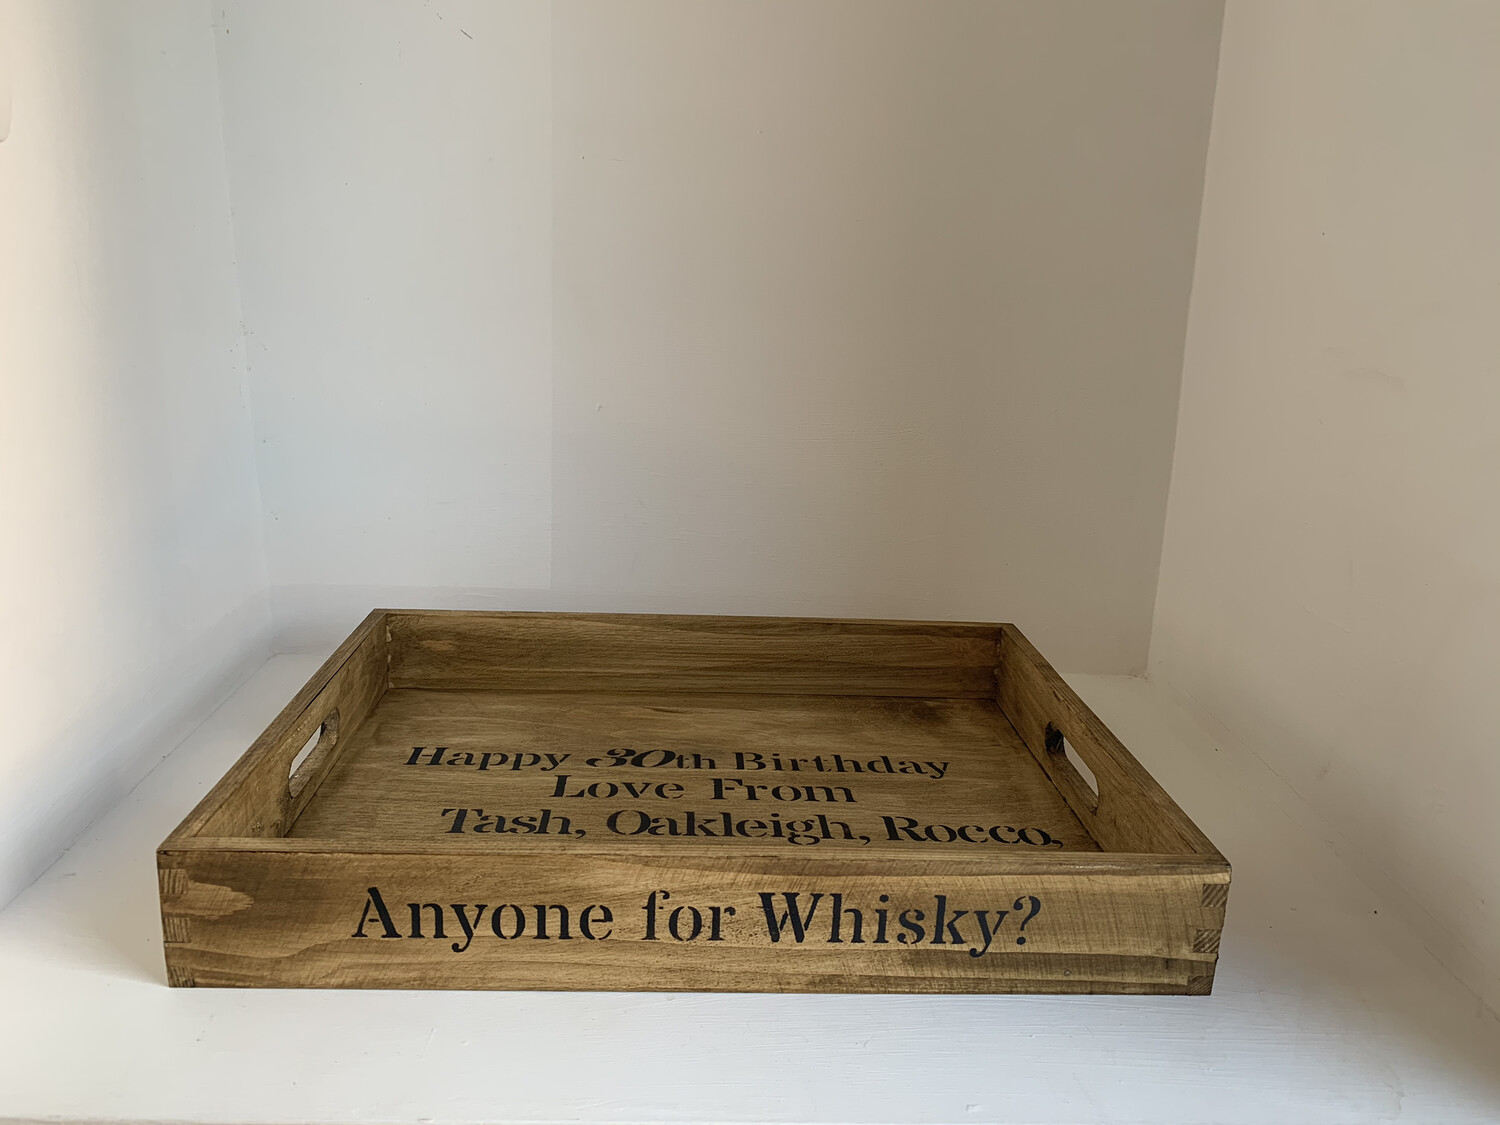 Anyone for Whisky? decorative shabby chic wooden tray  Free UK P&P